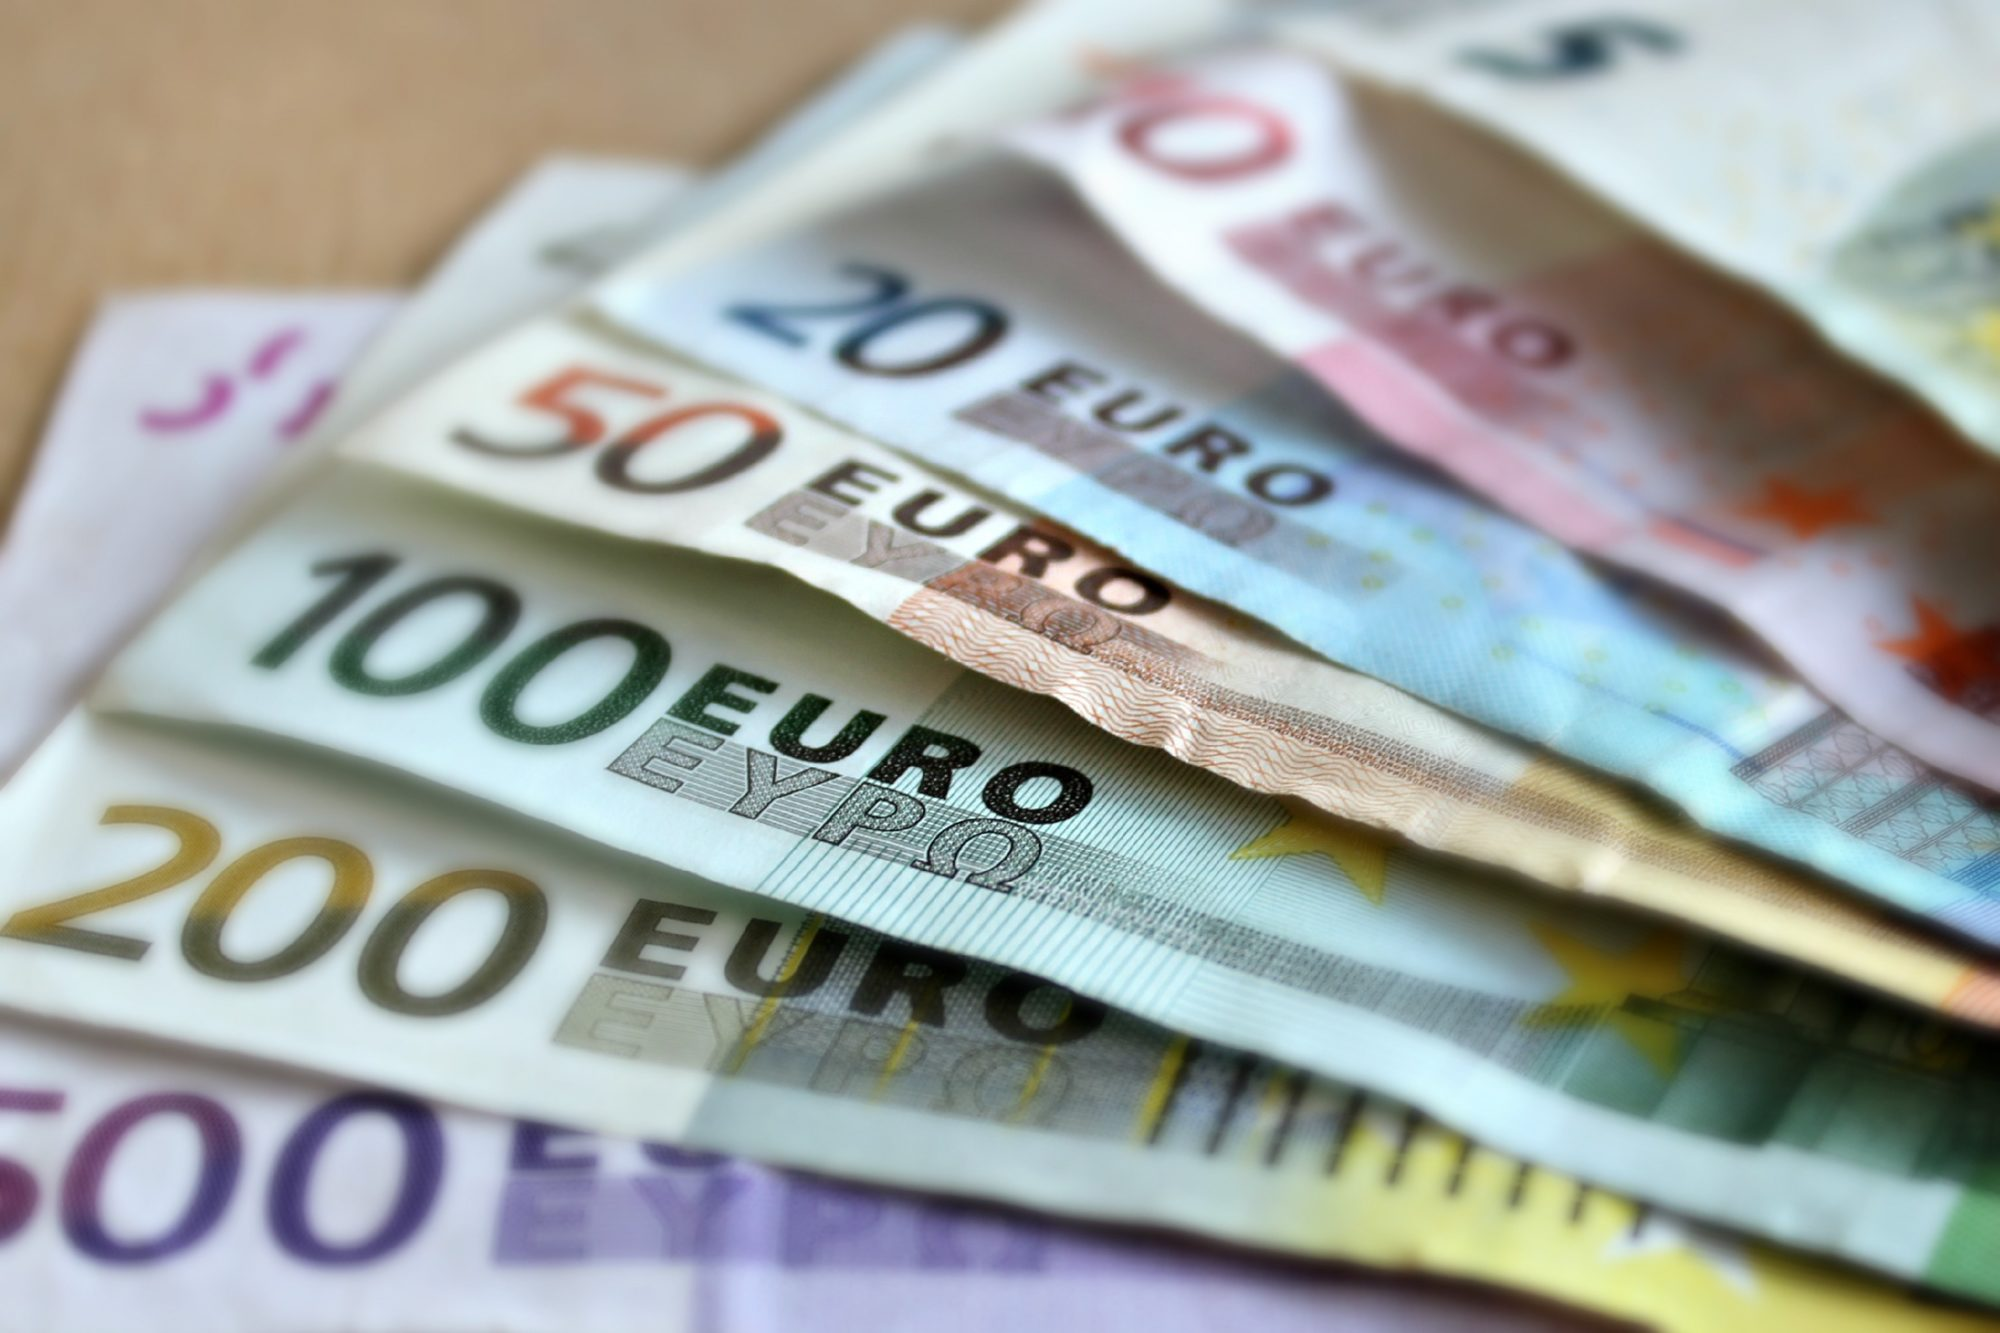 Banks in Montenegro use the Euro even though Montenegro is not a member of the European Union.